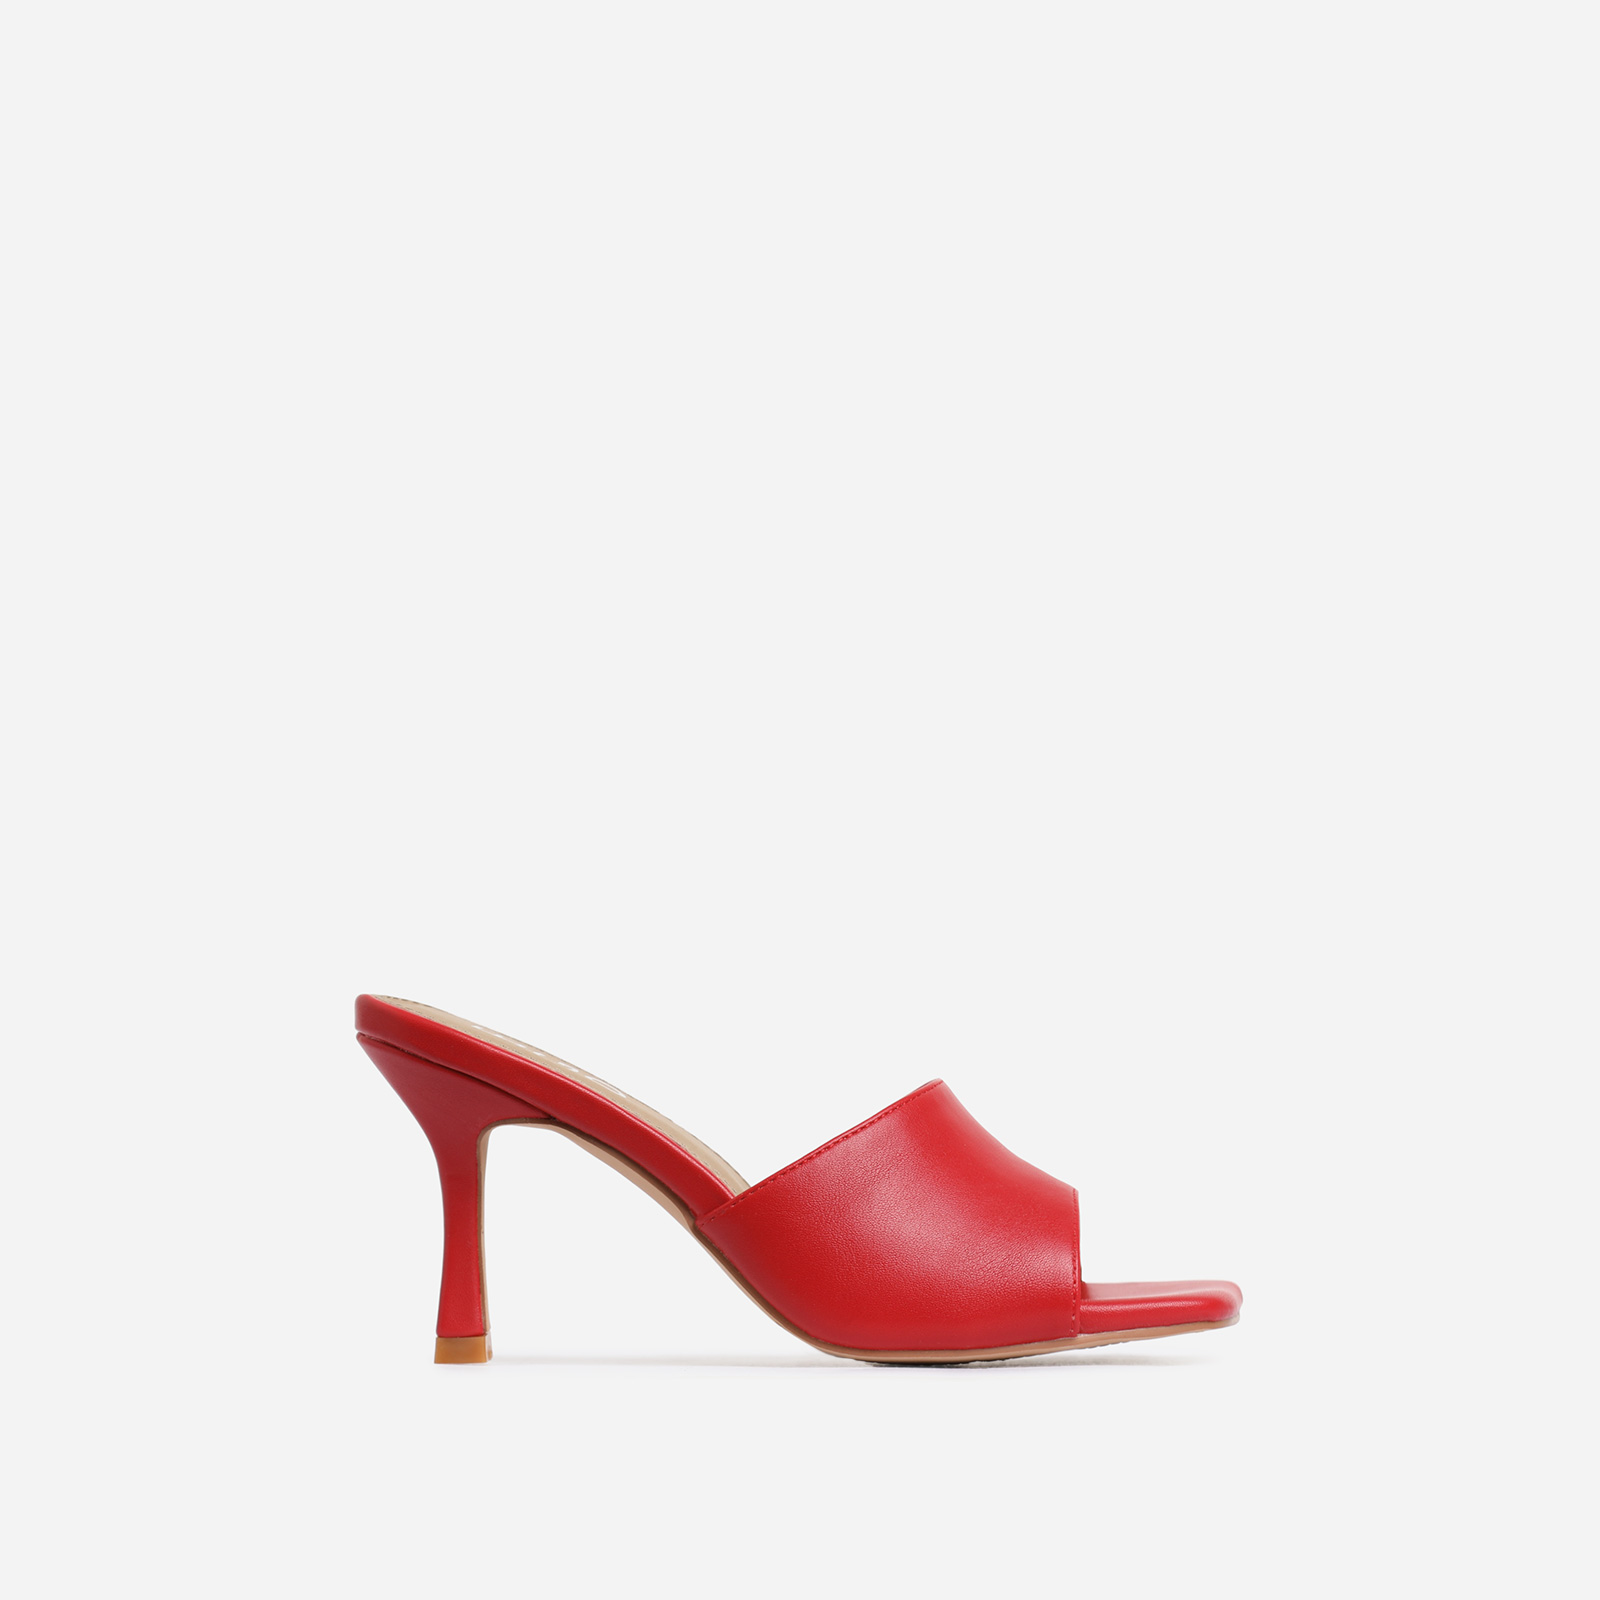 Hilton Square Peep Toe Kitten Heel Mule In Red Faux Leather